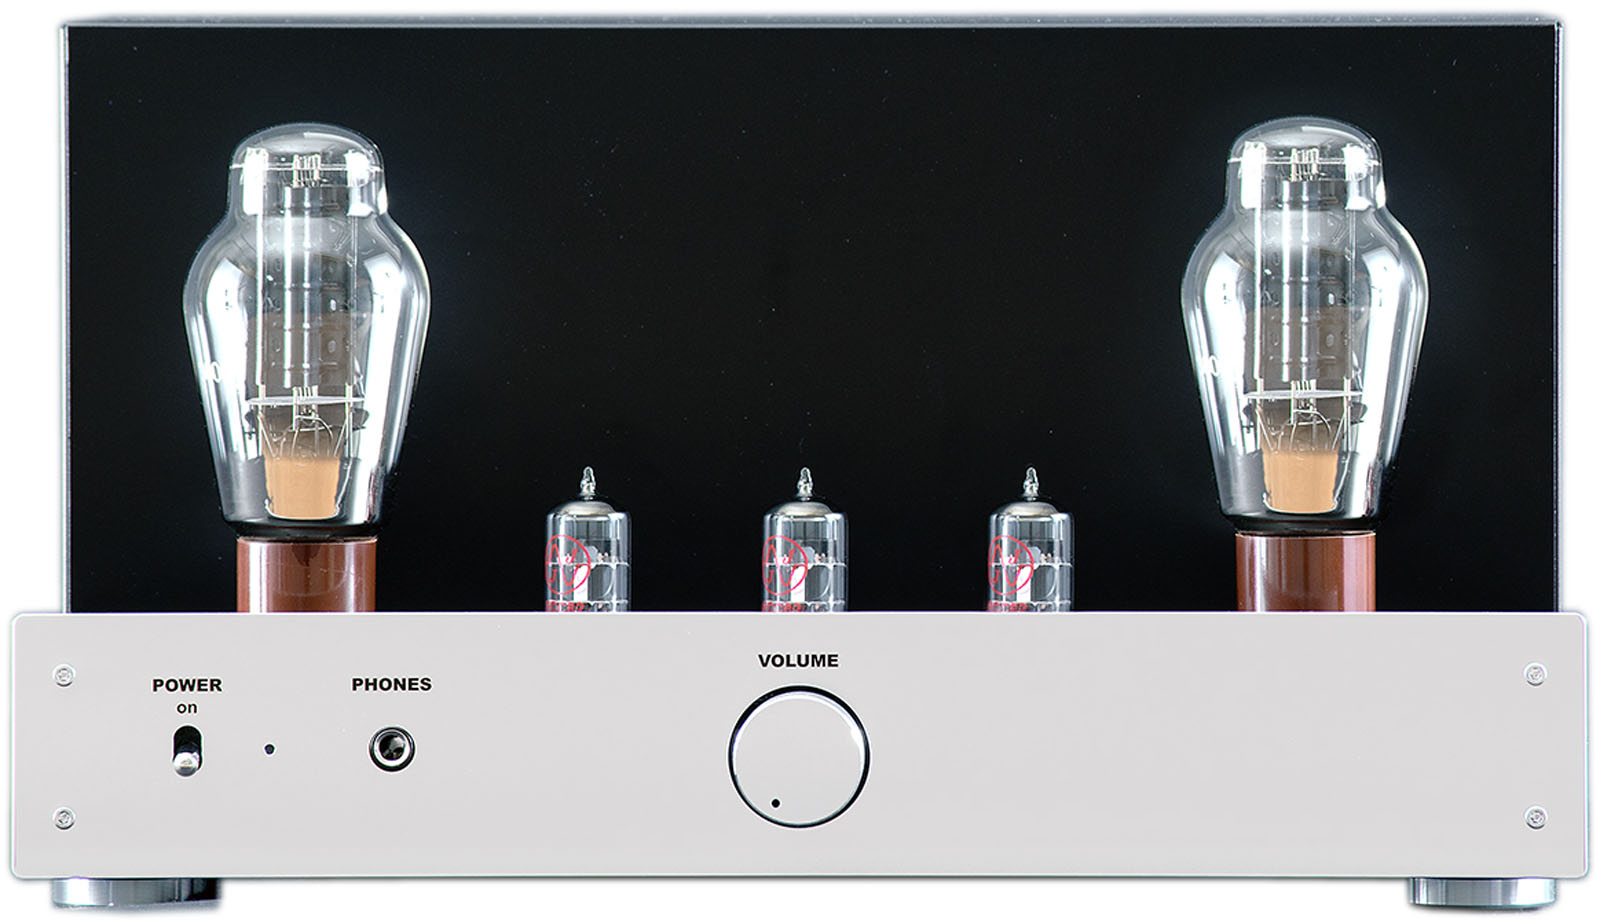 Elekit Tu 8600 300b Se Tube Amplifier Kit Limited Run Automatic Emergency Light Circuit Everything You Will Need To Build The Is Included Except Tubes Are Sold Separately